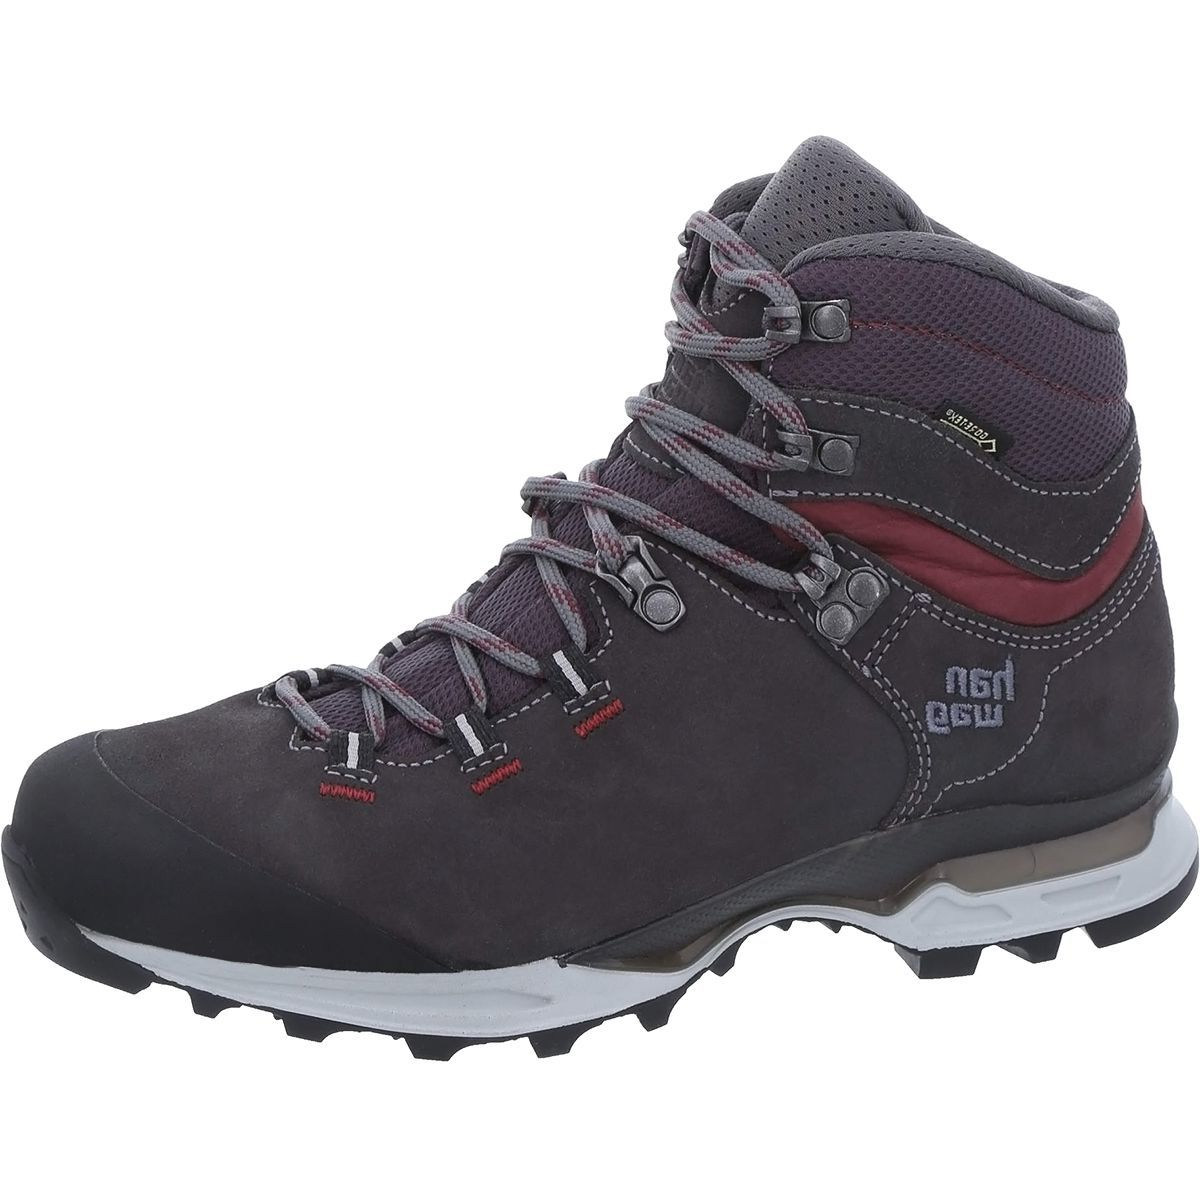 Hanwag Tatra Light Bunion Lady GTX Hiking Boot - Women's